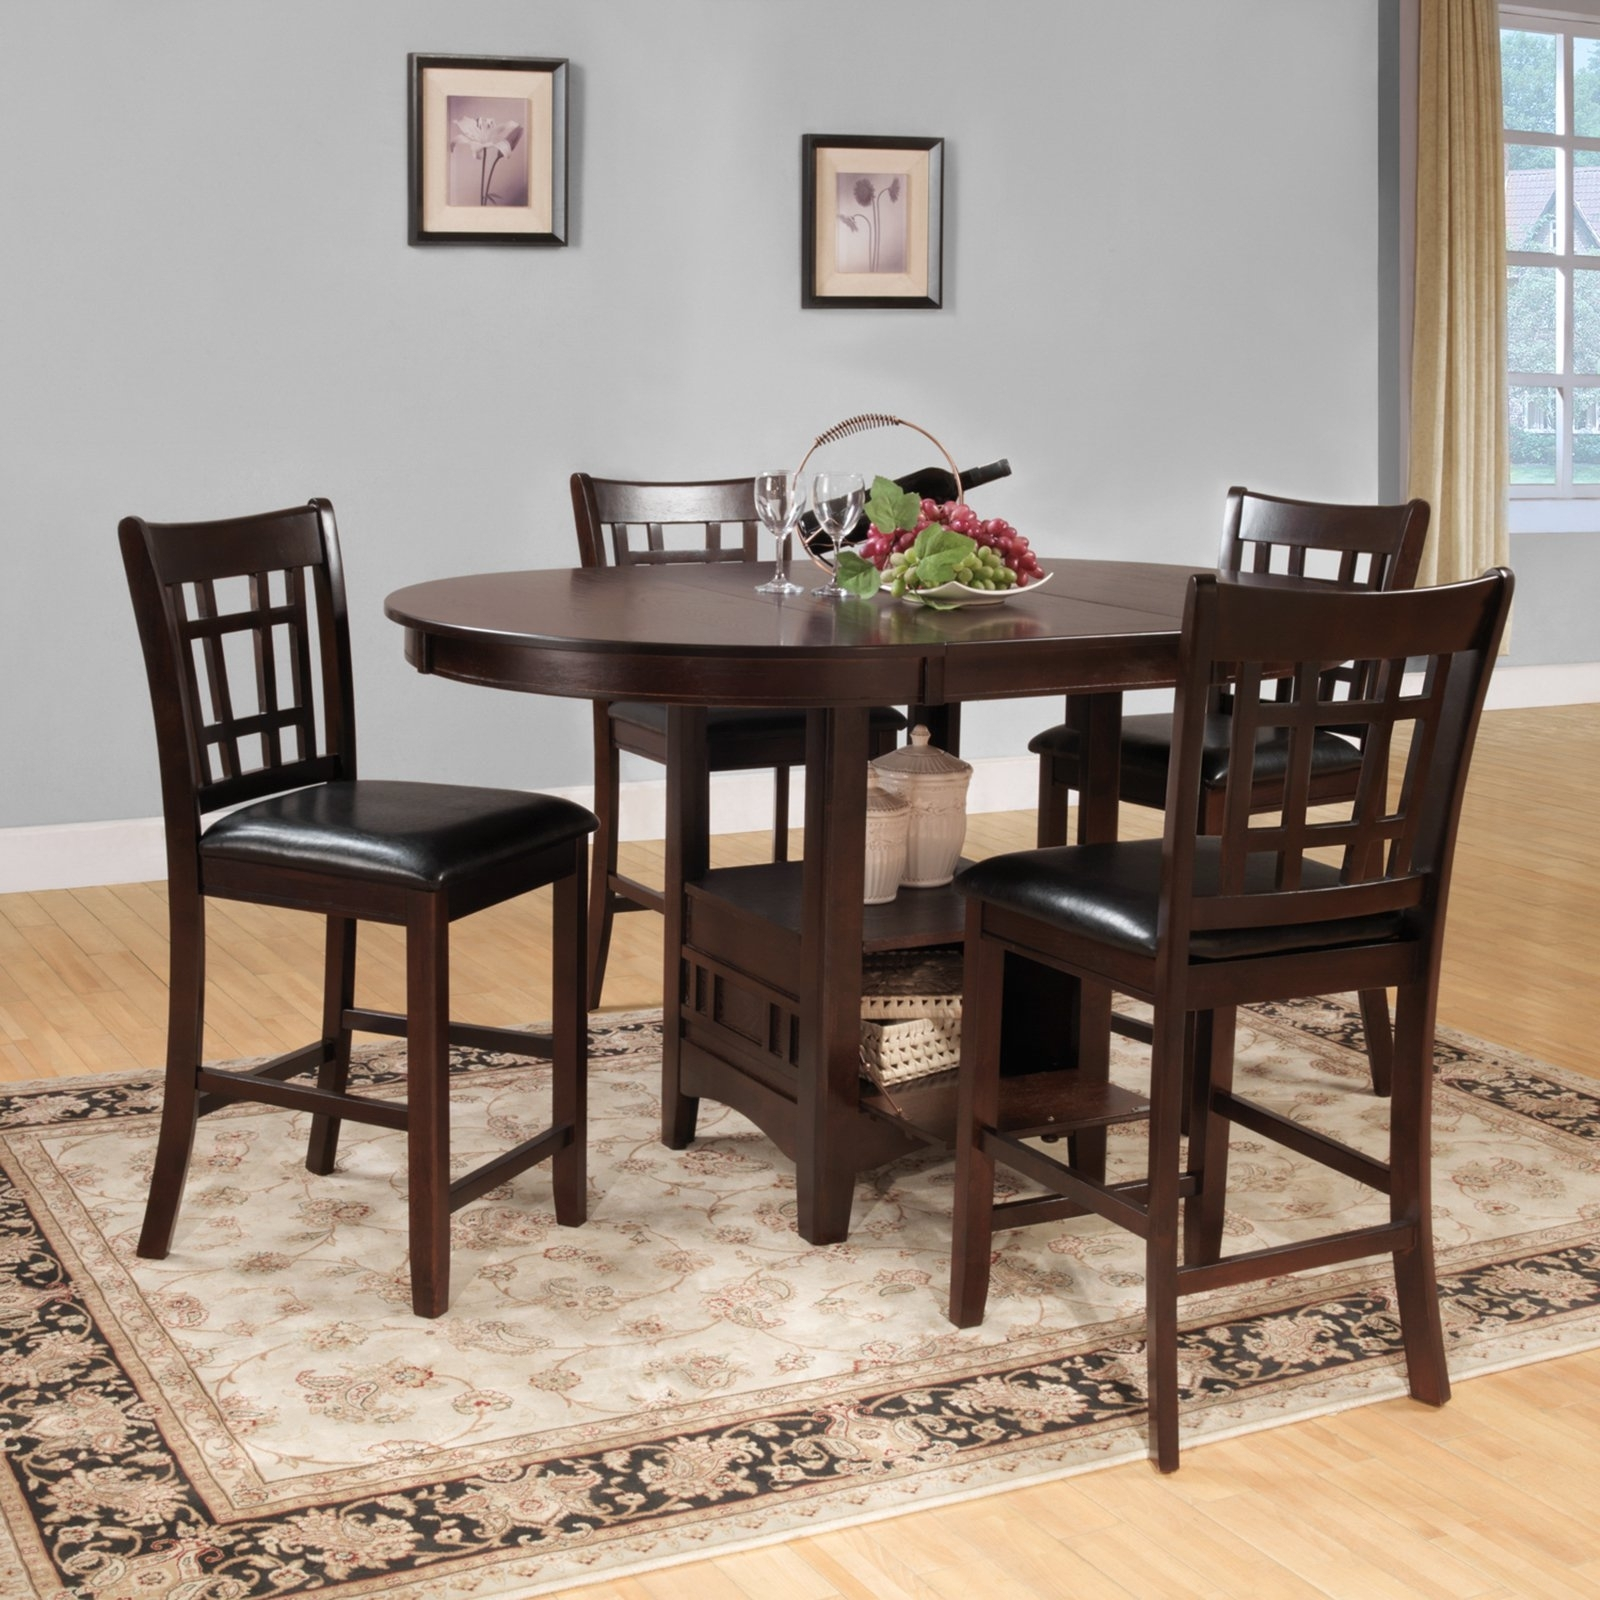 Weston Home Junipero 5 Pc Counter Height Dining Set, Dark Cherry With Regard To Most Up To Date Harper 5 Piece Counter Sets (Image 20 of 20)